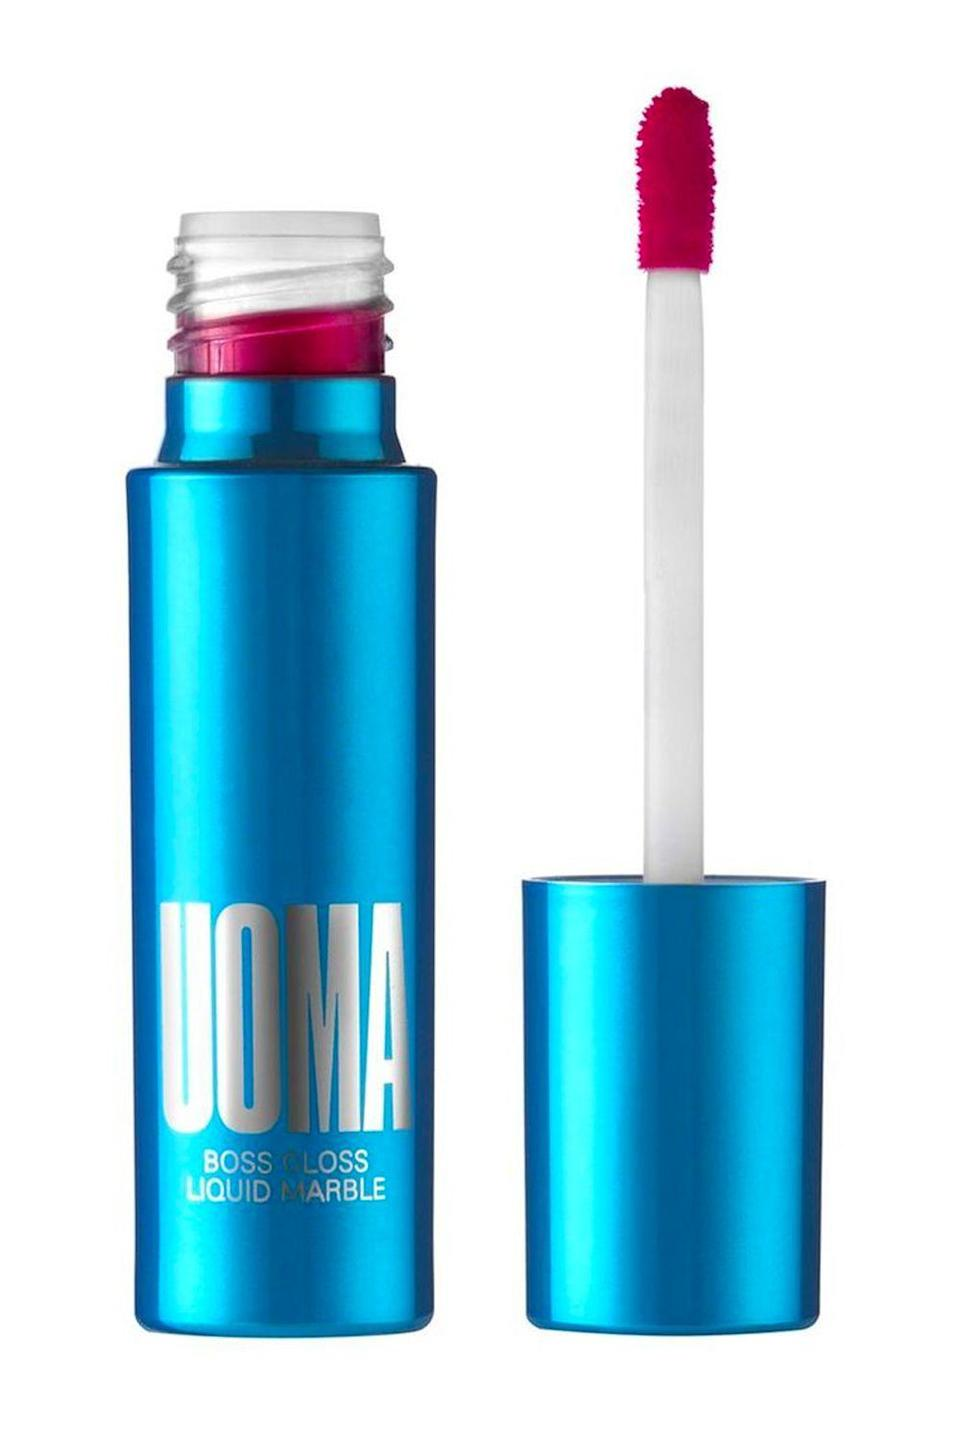 """<p><strong>UOMA Beauty</strong></p><p>ulta.com</p><p><strong>$22.00</strong></p><p><a href=""""https://go.redirectingat.com?id=74968X1596630&url=https%3A%2F%2Fwww.ulta.com%2Fp%2Fboss-gloss-liquid-marble-pimprod2006205&sref=https%3A%2F%2Fwww.cosmopolitan.com%2Fstyle-beauty%2Fbeauty%2Fg12447782%2Fbest-lip-gloss%2F"""" rel=""""nofollow noopener"""" target=""""_blank"""" data-ylk=""""slk:Shop Now"""" class=""""link rapid-noclick-resp"""">Shop Now</a></p><p>Listen, I get it: Lip gloss isn't like <a href=""""https://www.cosmopolitan.com/style-beauty/beauty/g26099200/best-matte-lipstick-colors/"""" rel=""""nofollow noopener"""" target=""""_blank"""" data-ylk=""""slk:matte lipstick"""" class=""""link rapid-noclick-resp"""">matte lipstick</a>—it's not going to stay on your lips forever. But there's nothing worse than reapplying your lip gloss every 30 minutes. Thankfully, you don't have to stress about that with this one. It creates a <strong>long-lasting layer of color on your lips that doesn't crack or settle into fine lines</strong>. </p>"""